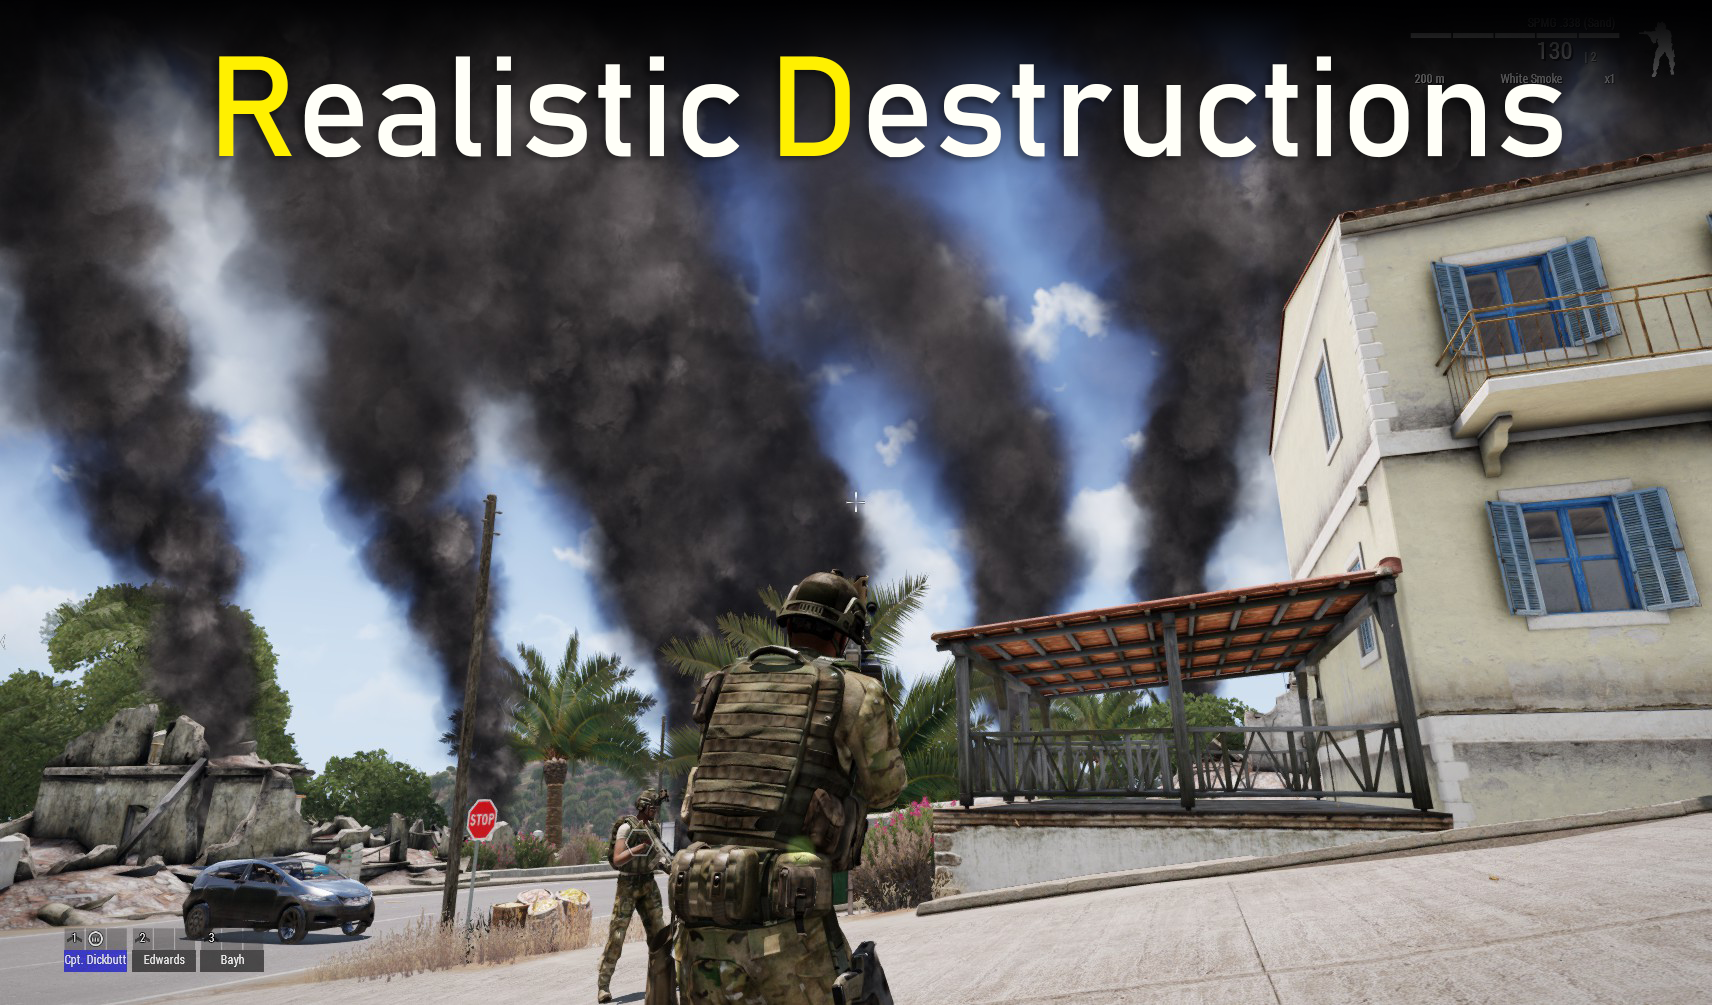 Realistic Destructions